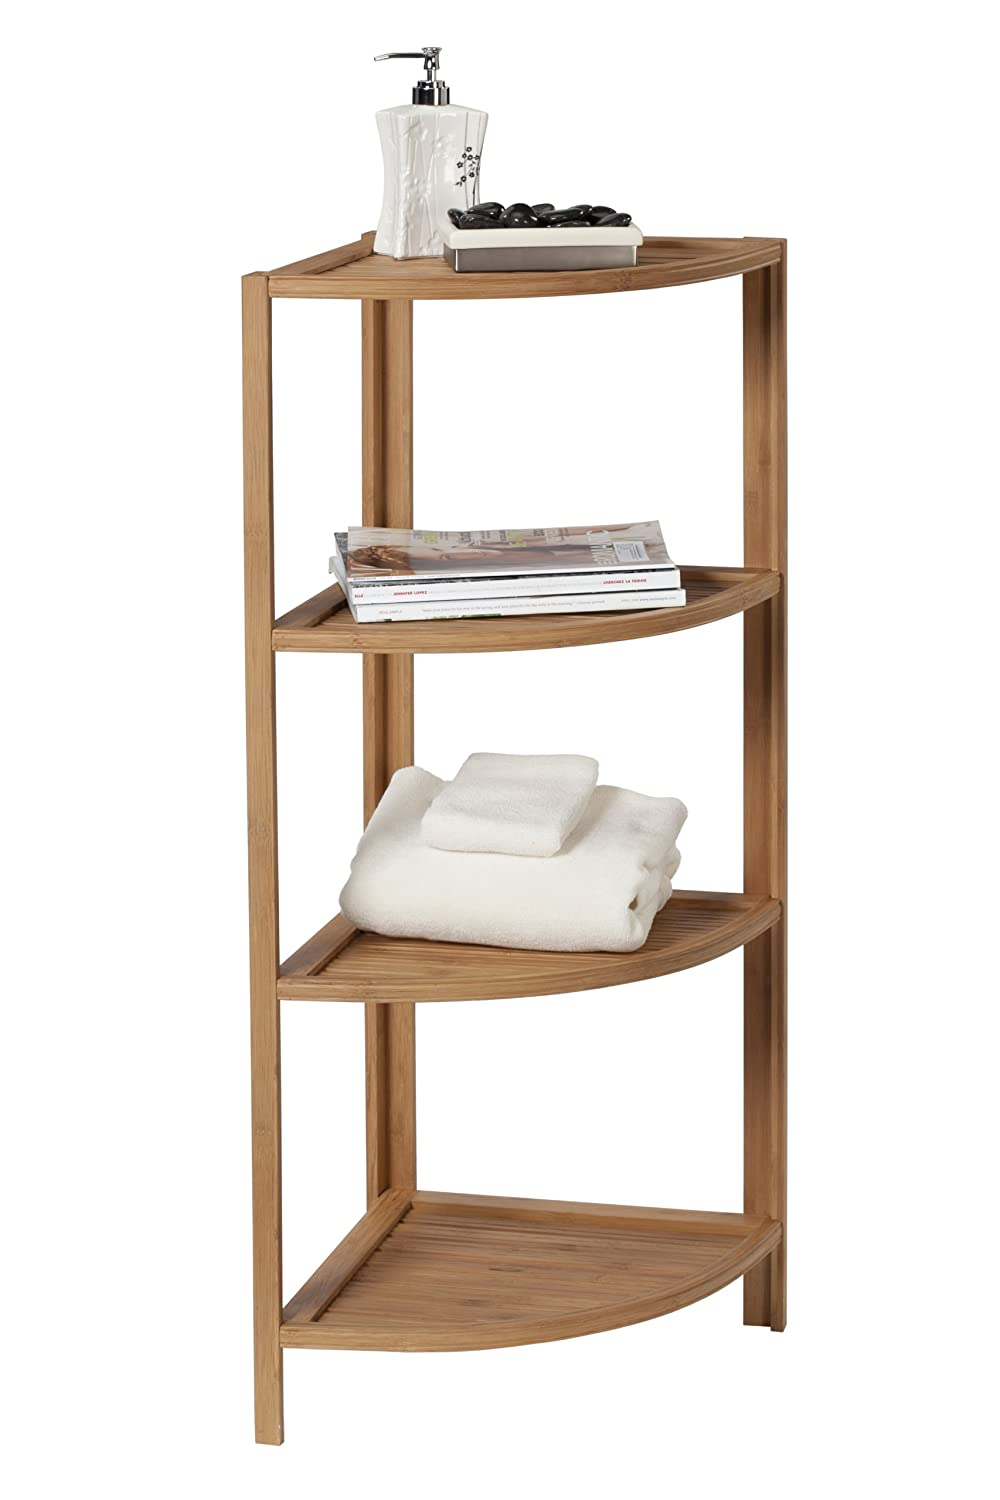 Superieur Amazon.com: Creative Bath Eco Styles 4 Shelf Corner Tower, Natural/Bamboo:  Home U0026 Kitchen